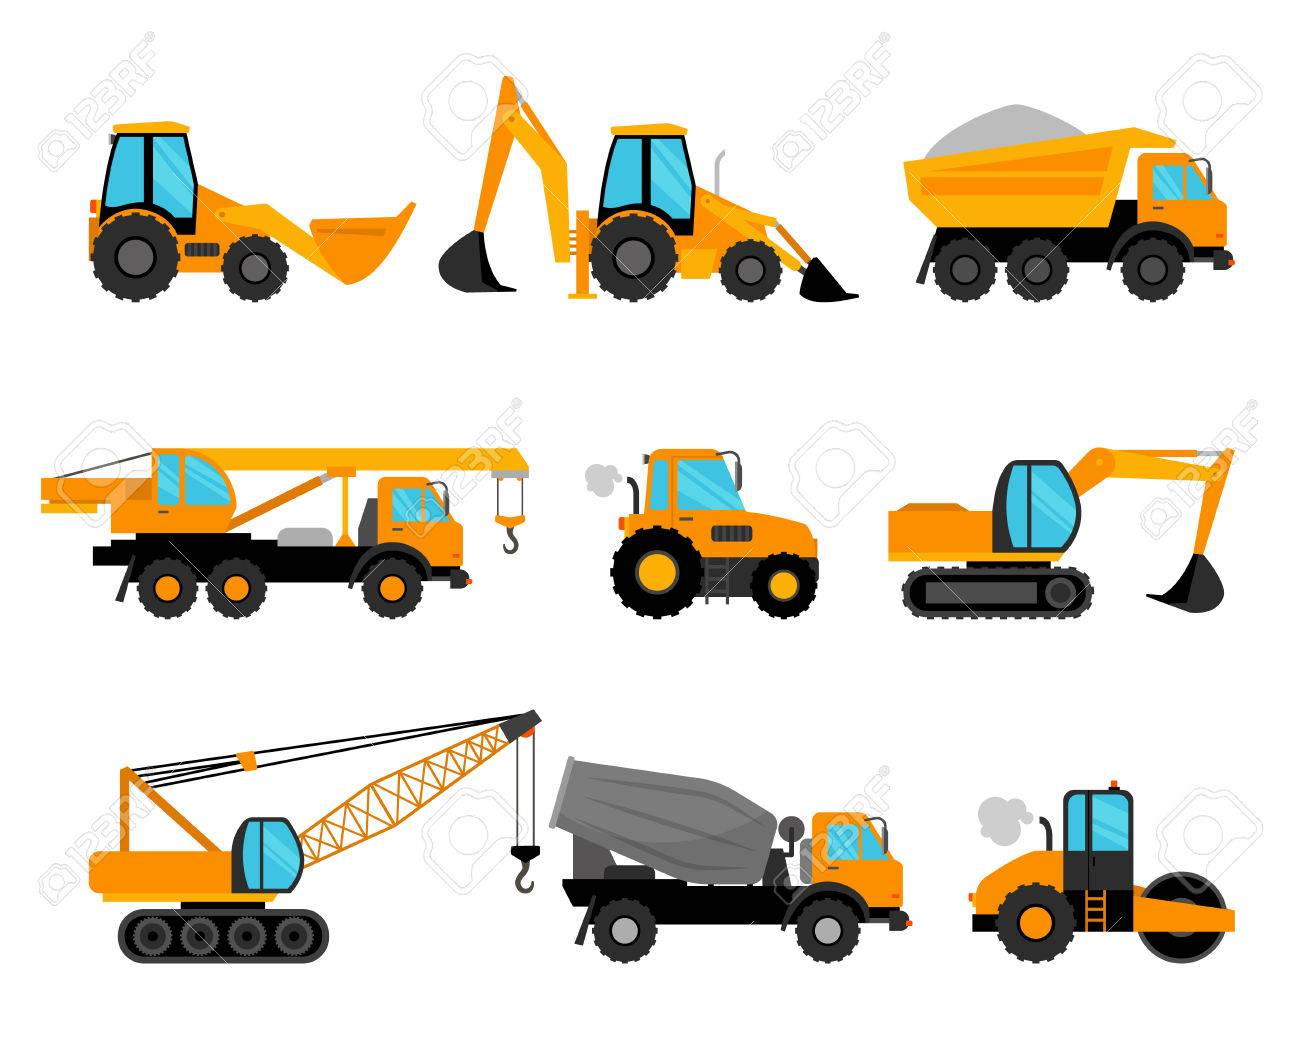 Construction Machinery And Building Construction Equipment Icons